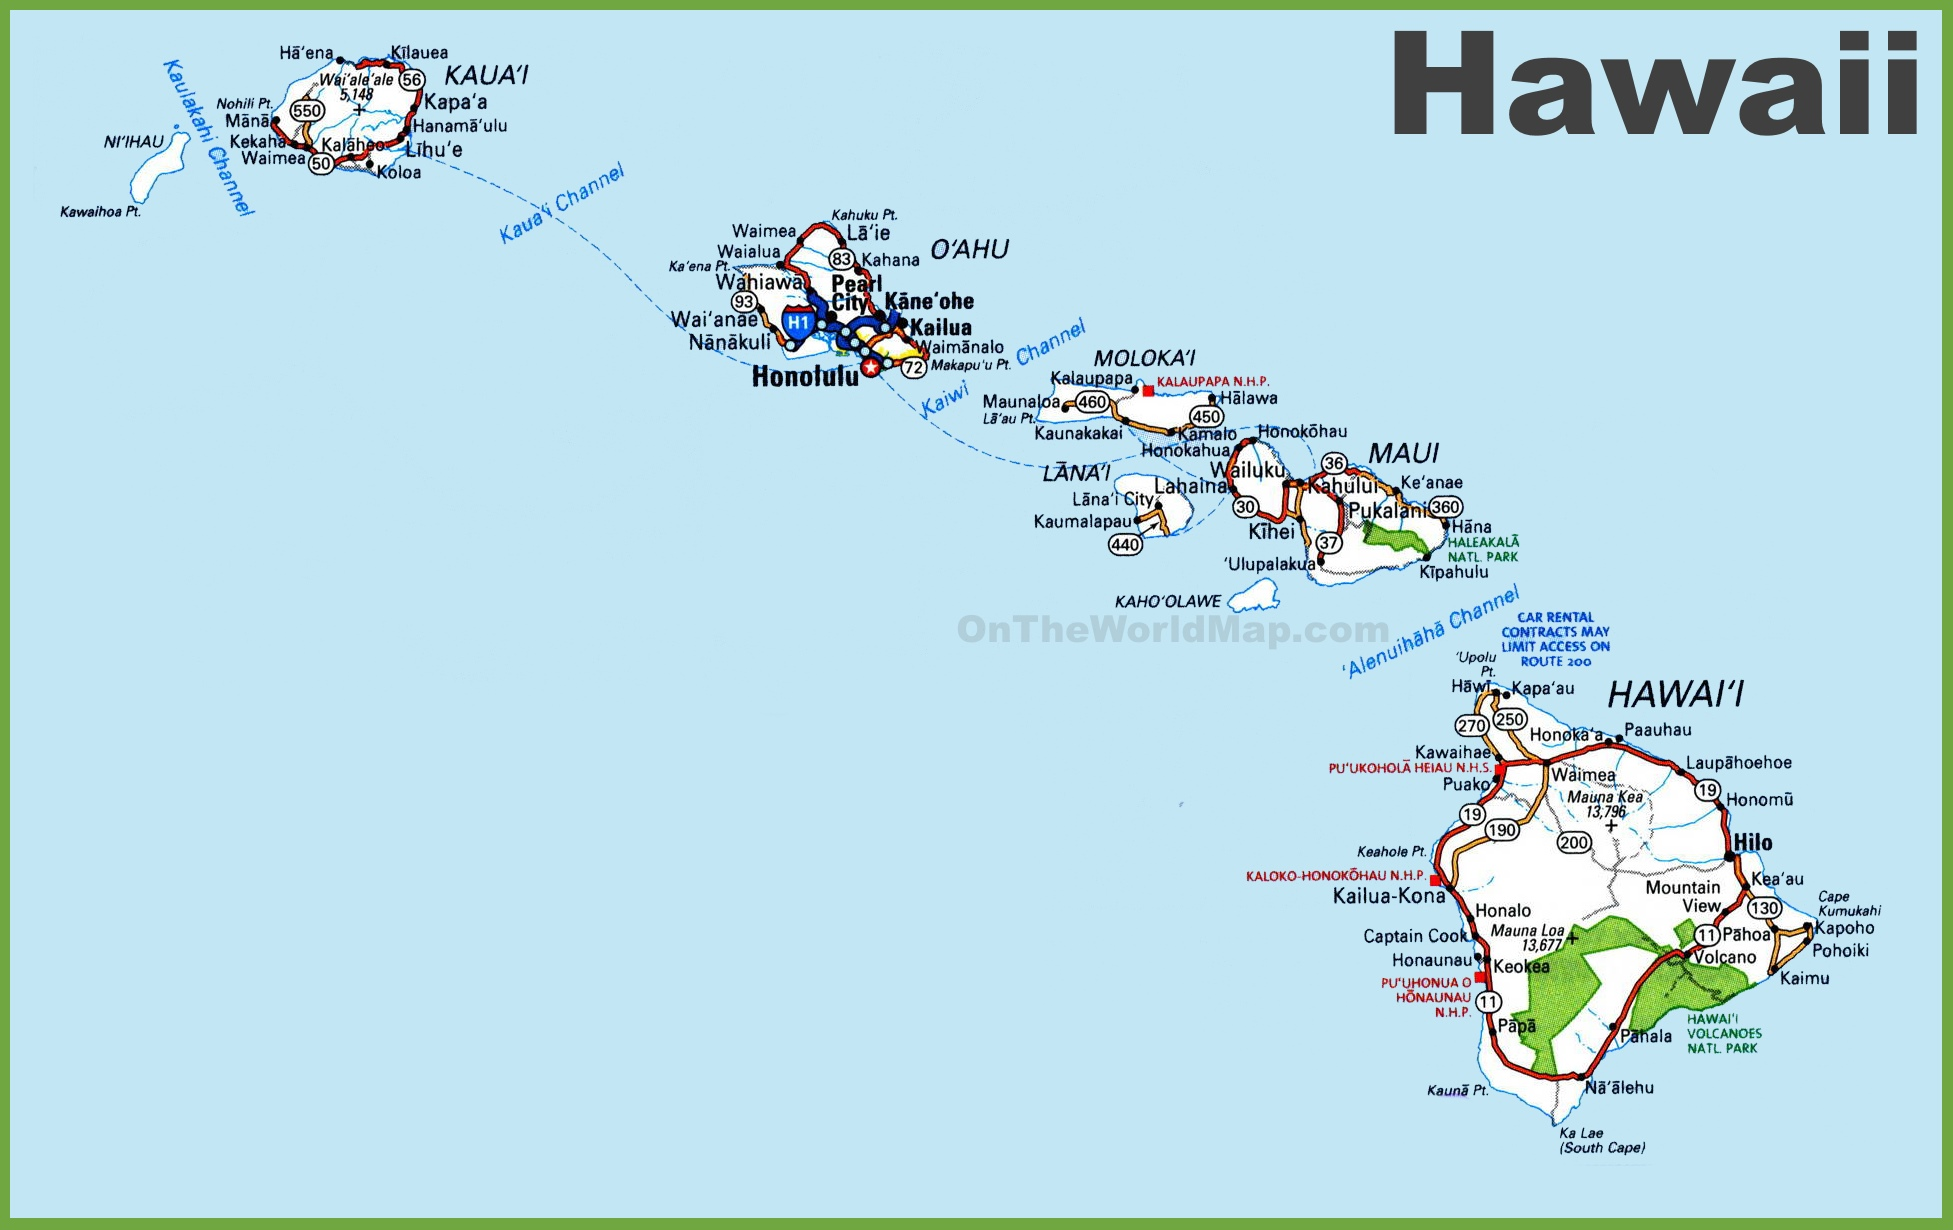 Hawaii Road Map - Hawaii road map